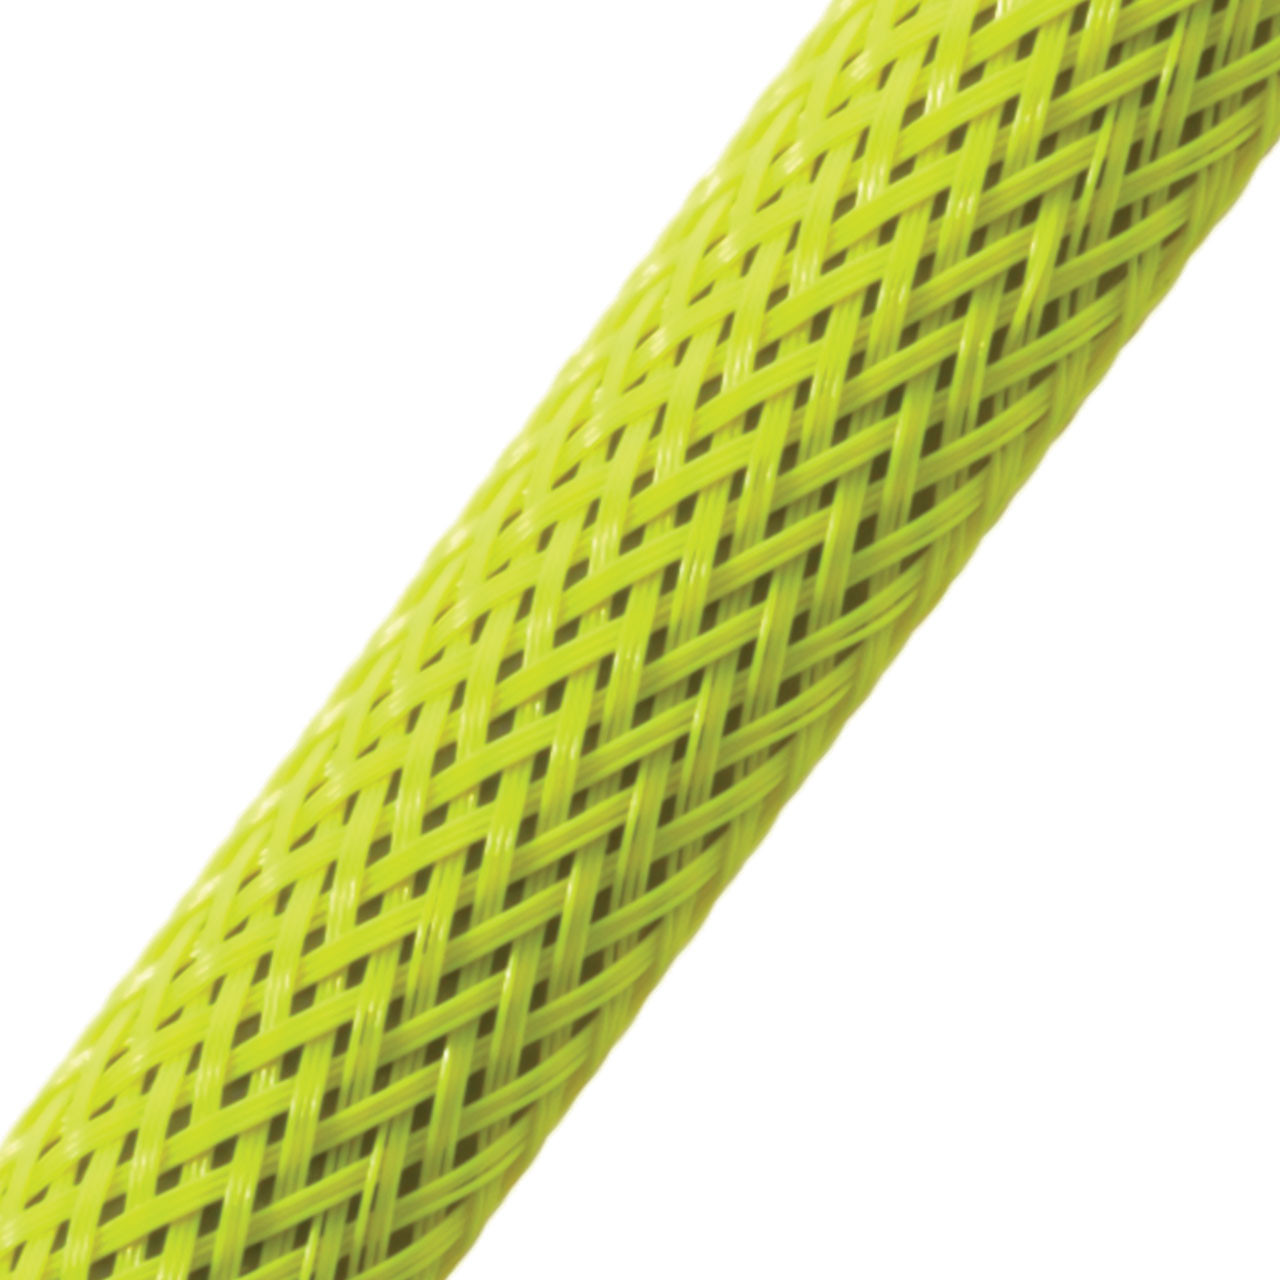 "BRAIDED SLEEVE 1/4"" 45' NEON YELLOW EXPANDS 5/32-7/16"""